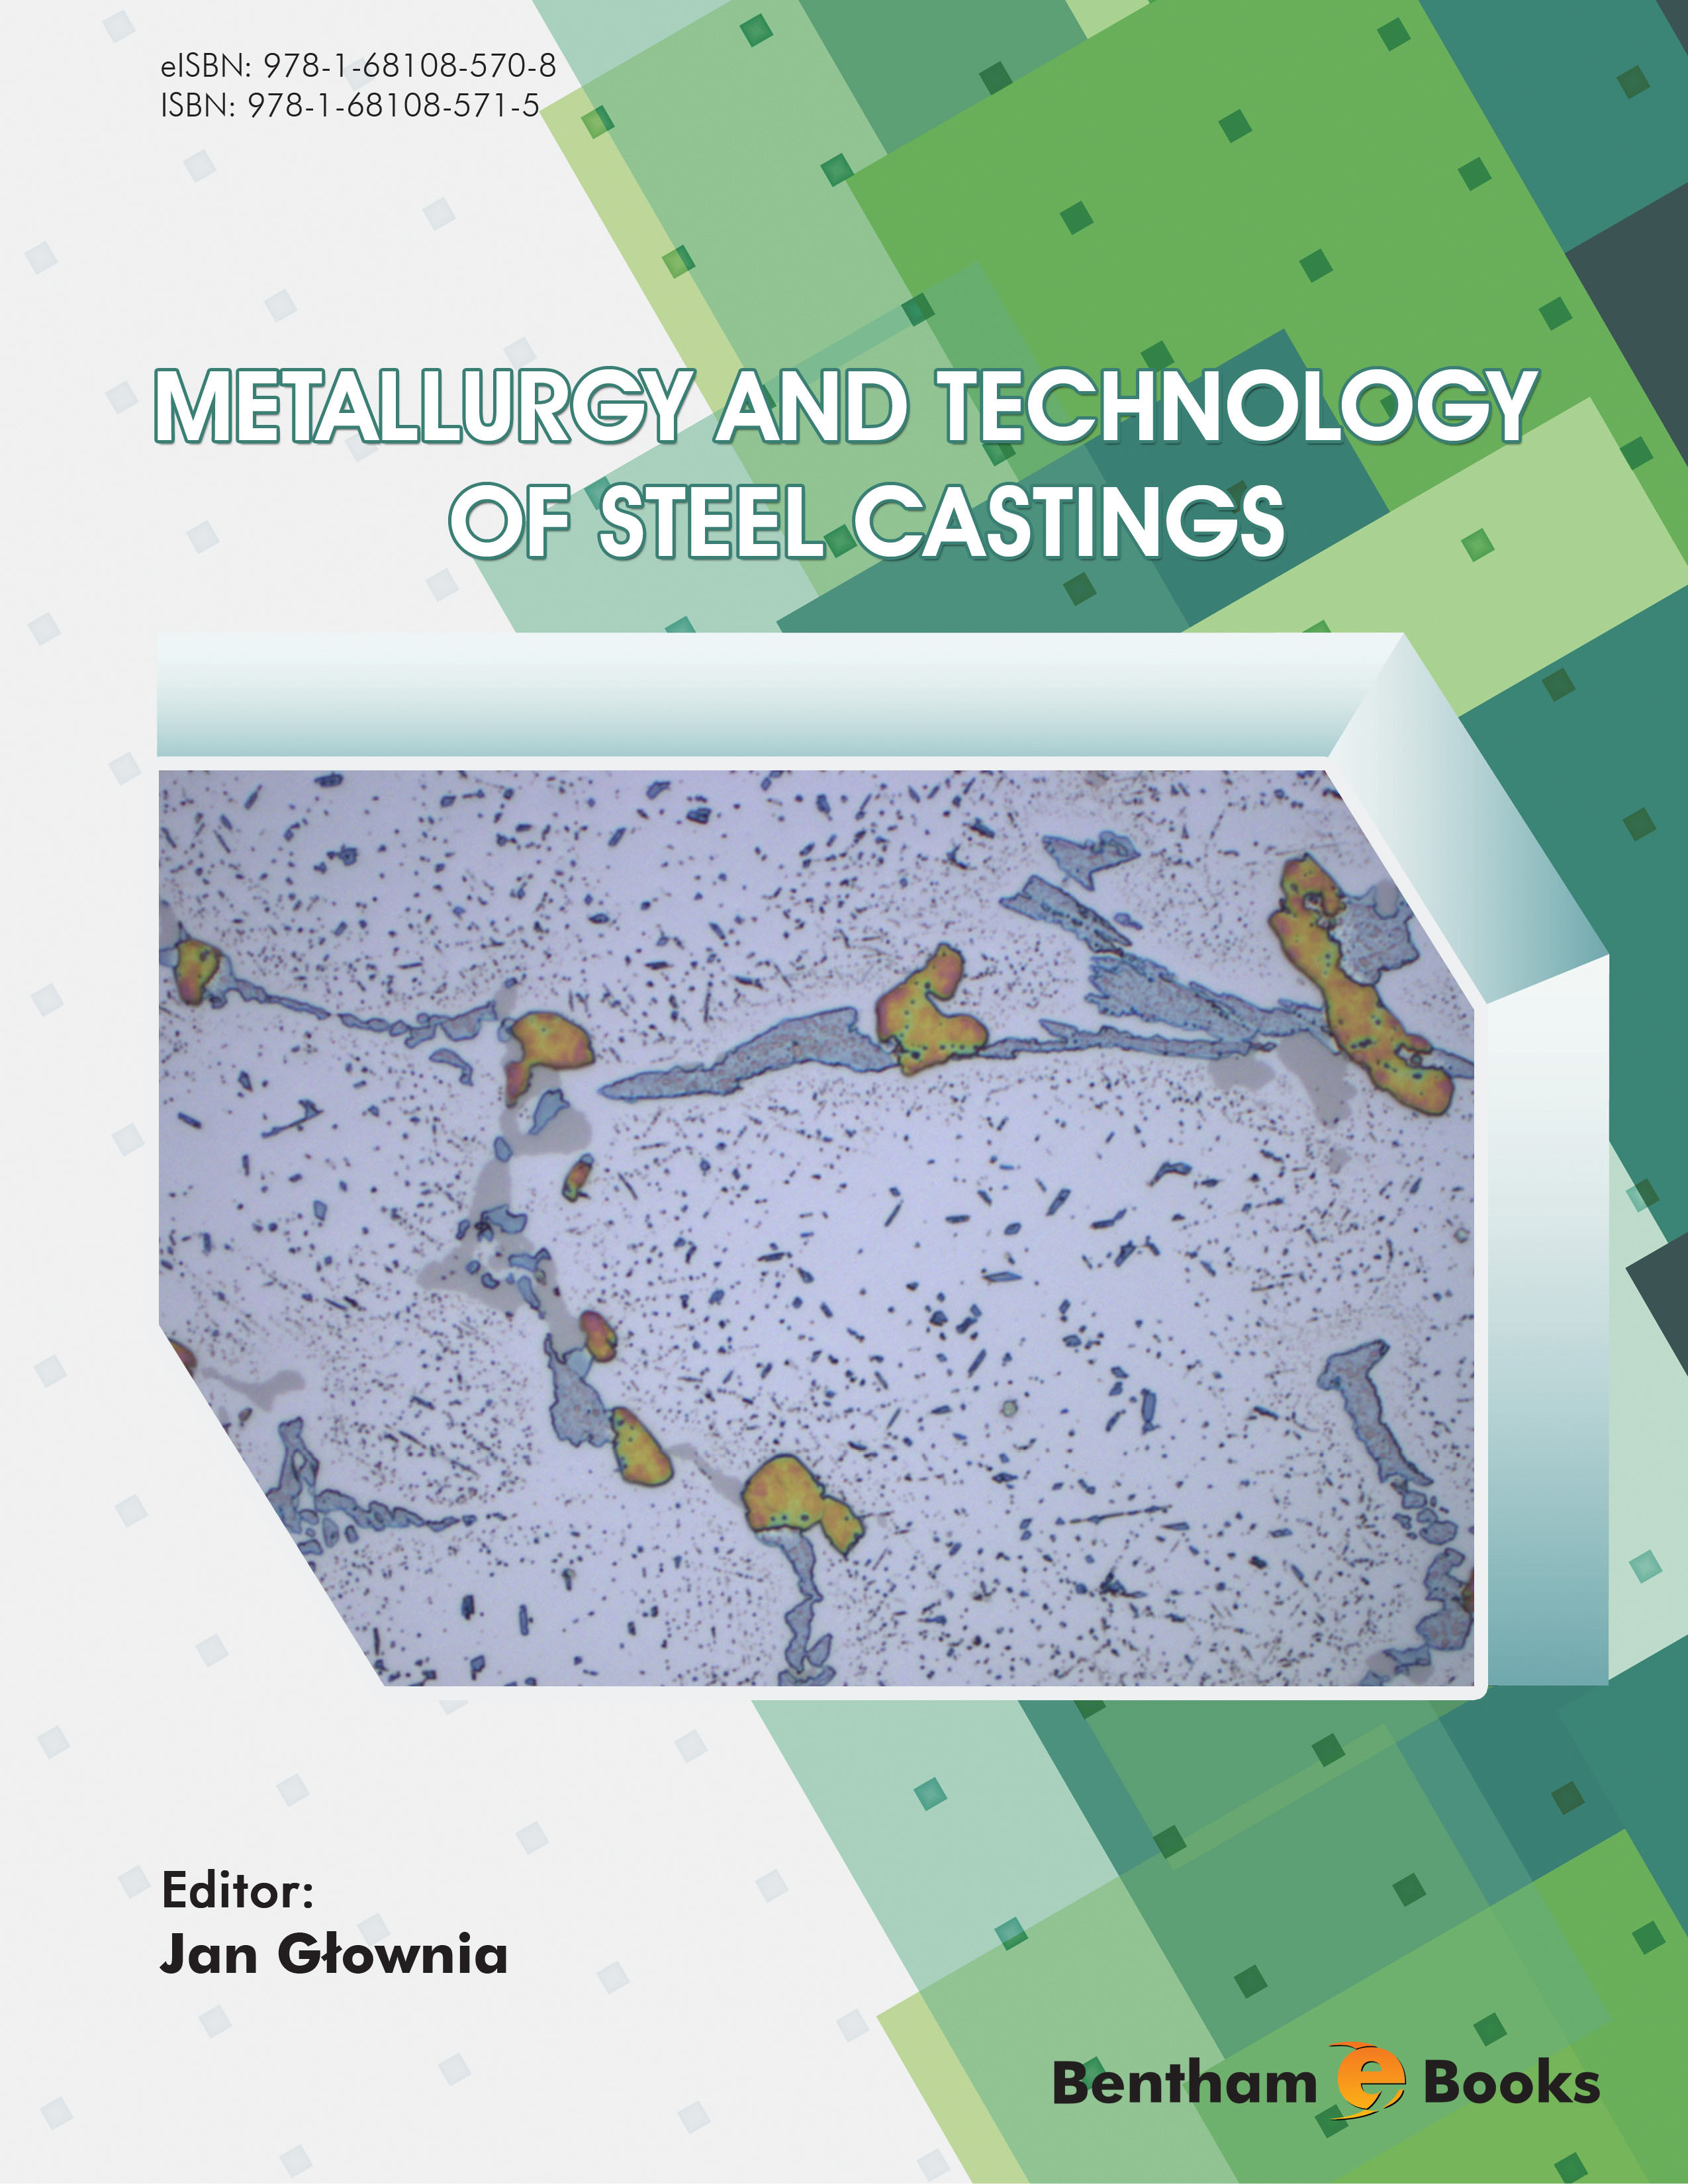 Metallurgy and Technology of Steel Castings